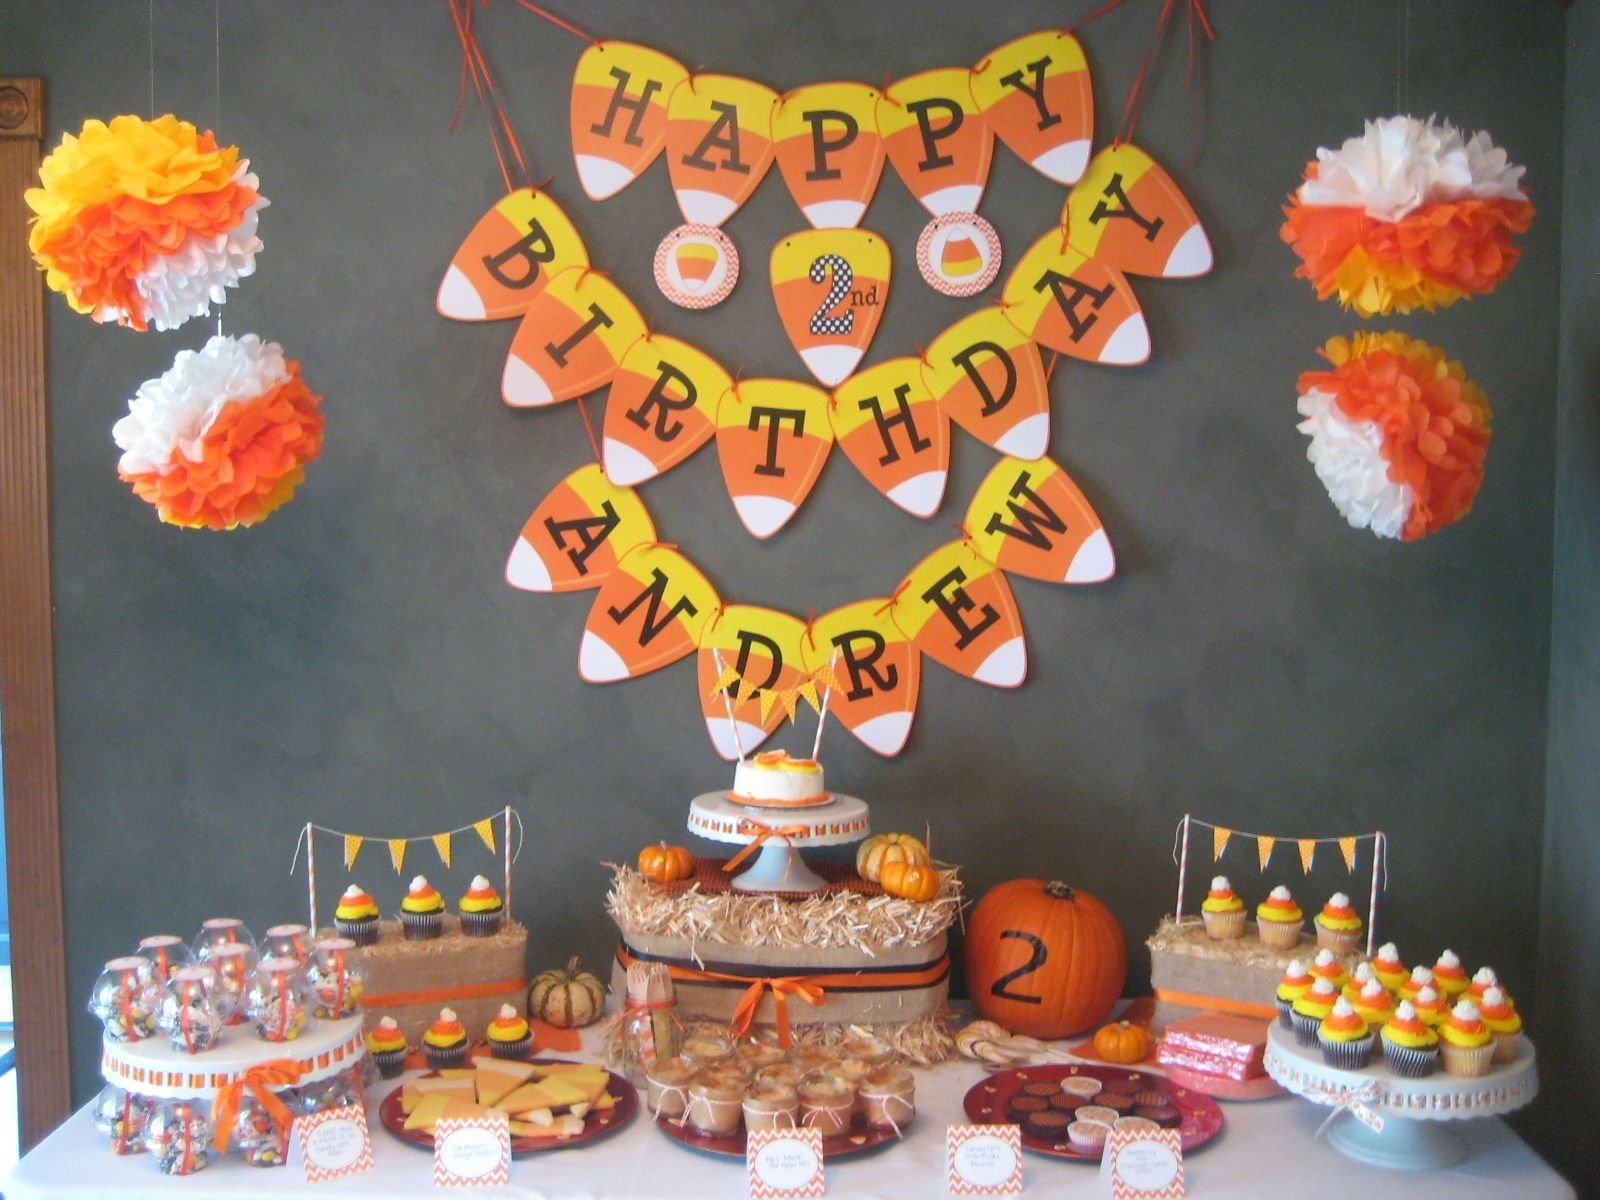 10 Ideal Fall Birthday Party Ideas For Kids halloween themed birthday parties for kids halloween birthday 2020